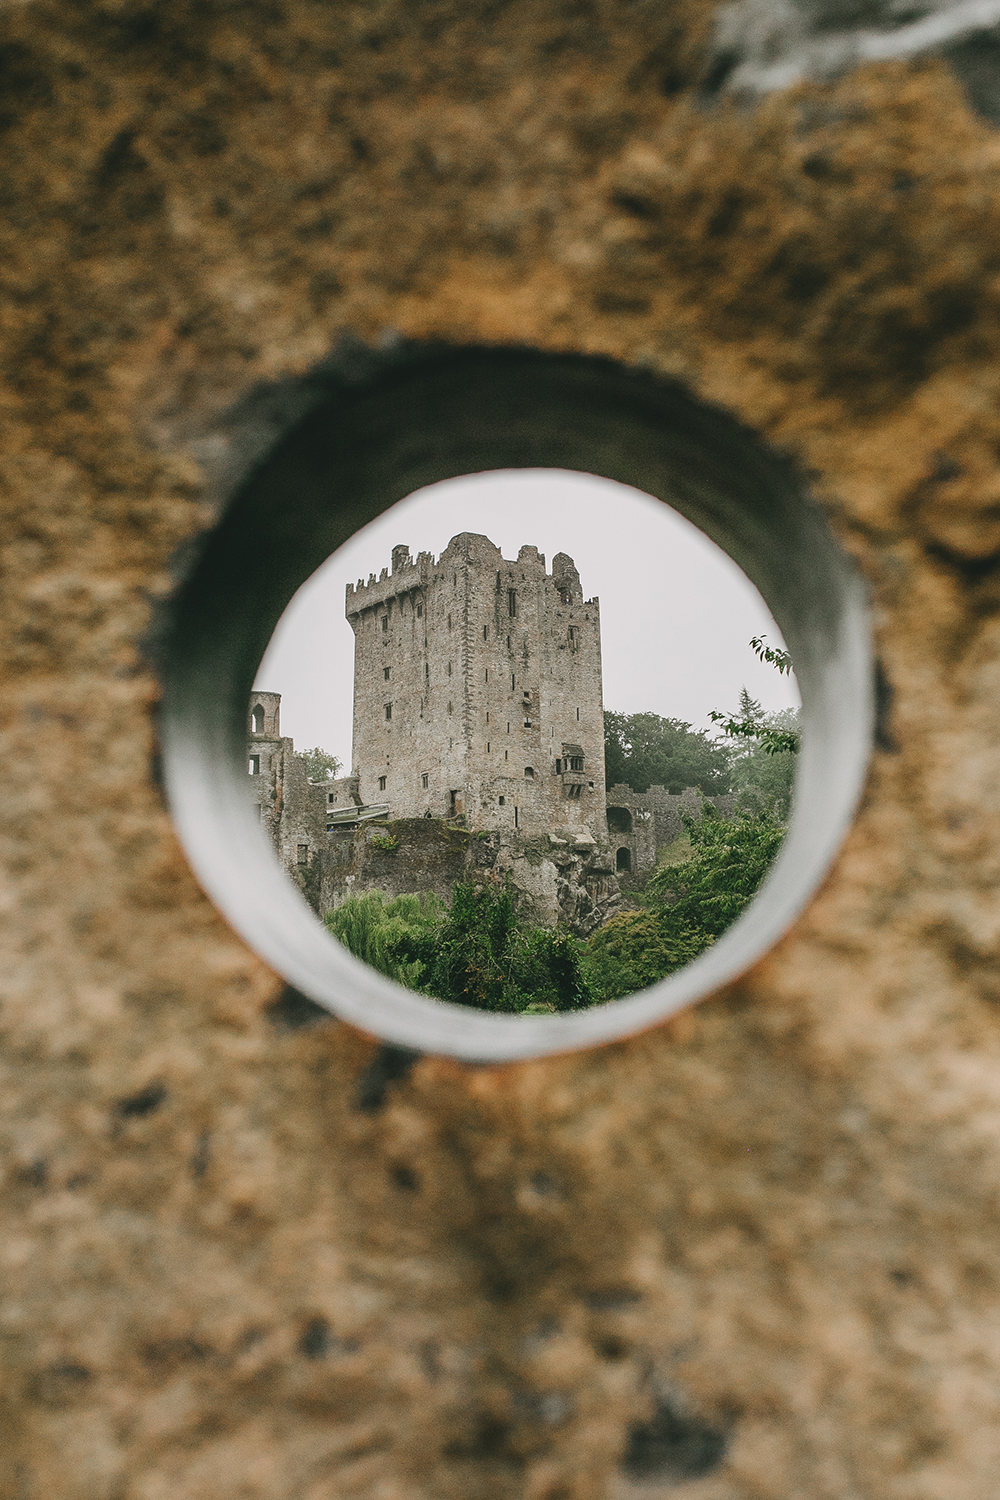 livvyland-blog-olivia-watson-austin-texas-travel-lifestyle-blogger-what-do-see-ireland-cork-blarney-castle-13